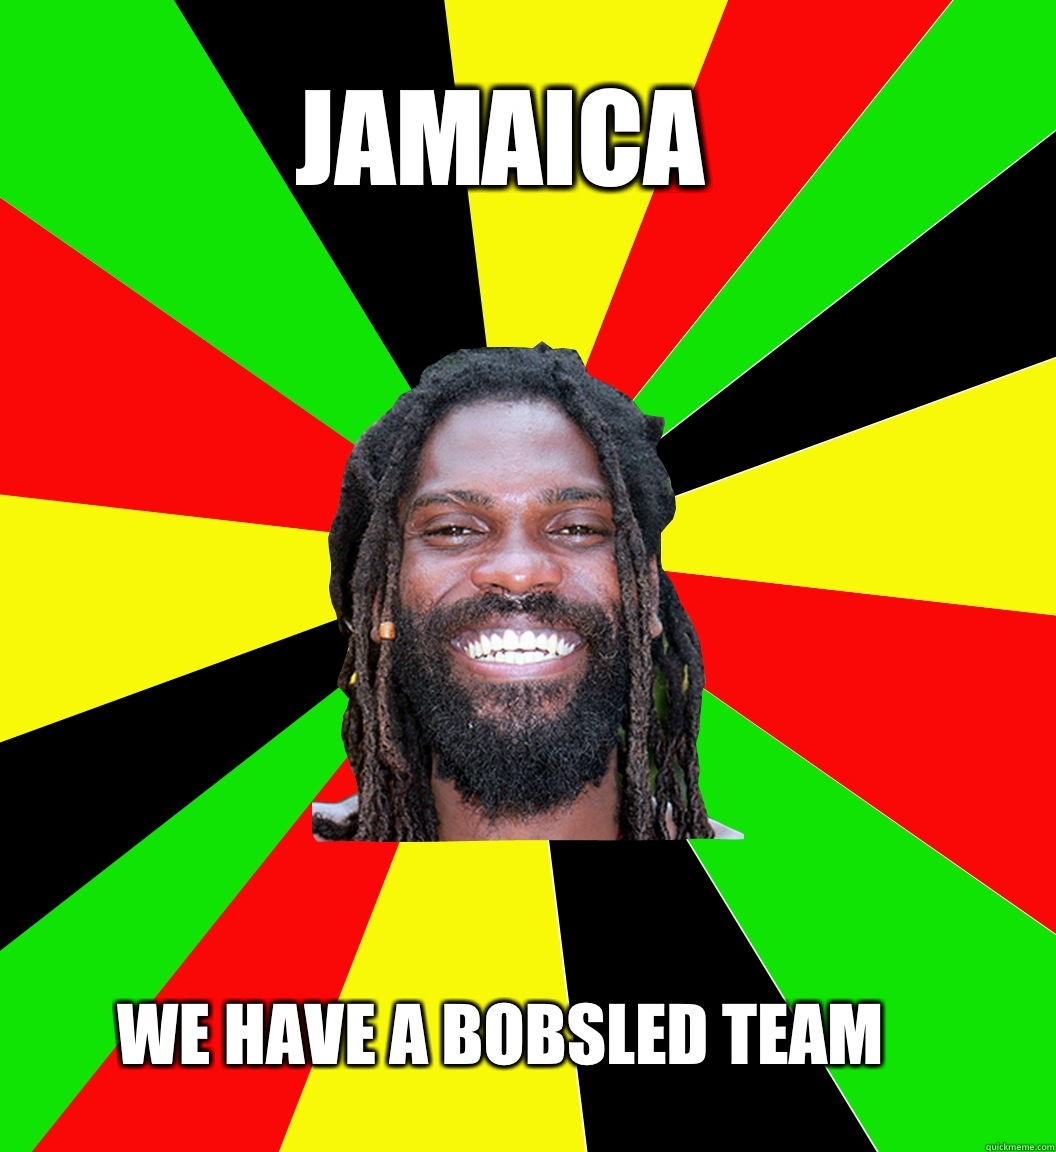 JAMAICA WE HAVE A BOBSLED TEAM - JAMAICA WE HAVE A BOBSLED TEAM  Jamaican Man